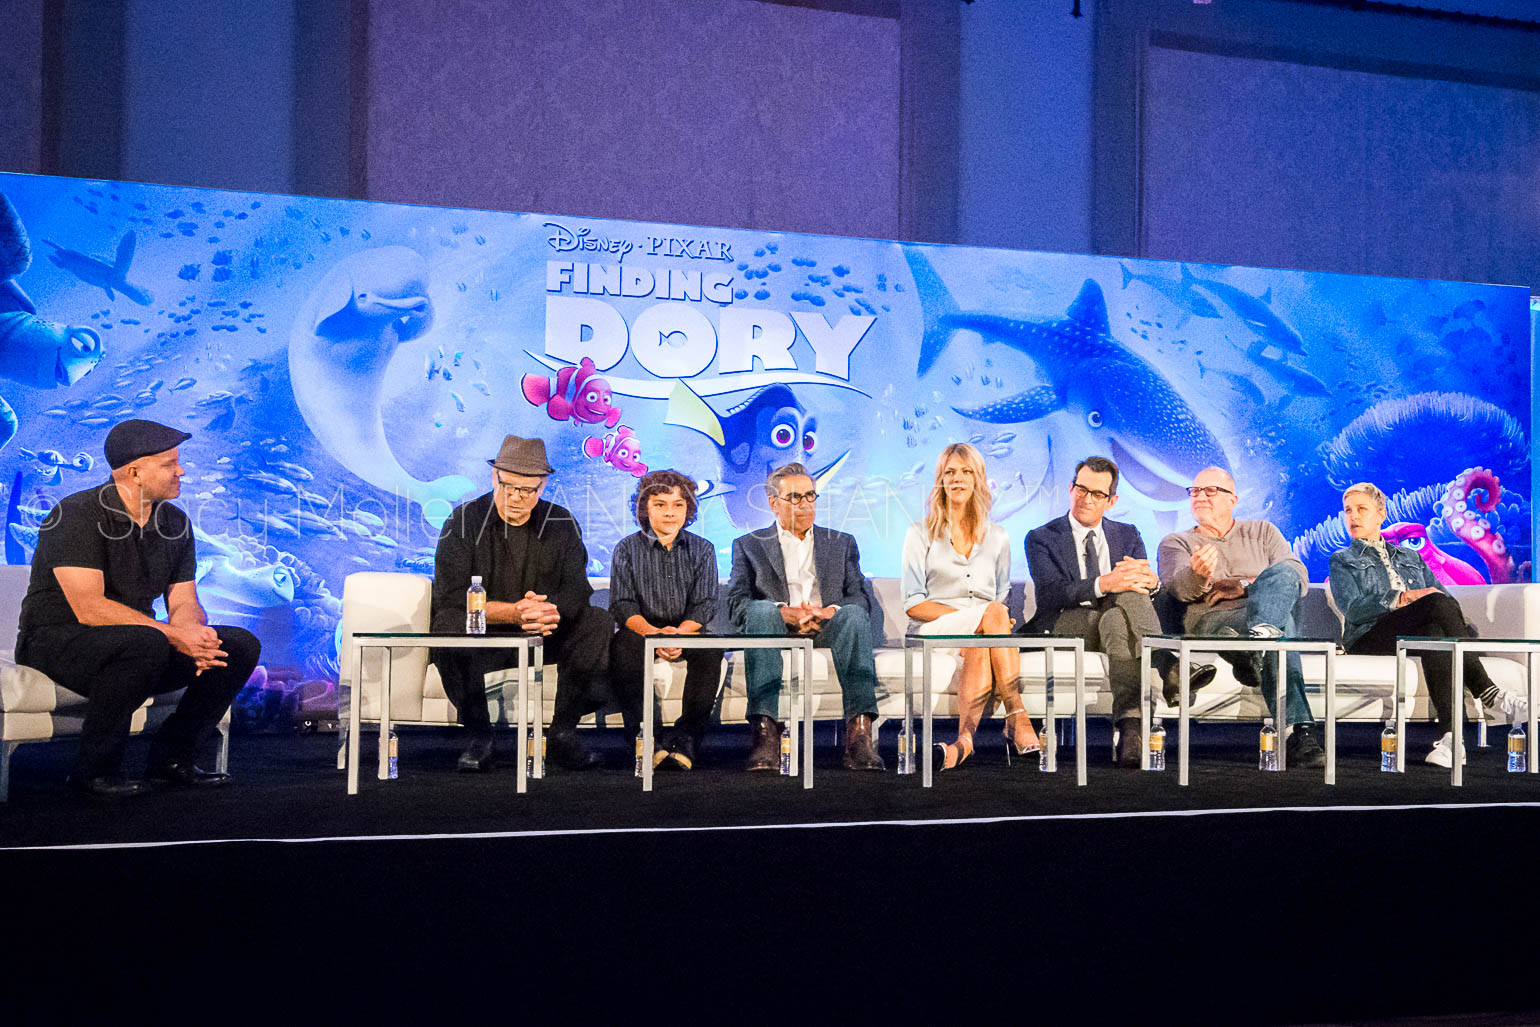 Finding Dory Cast Interviews